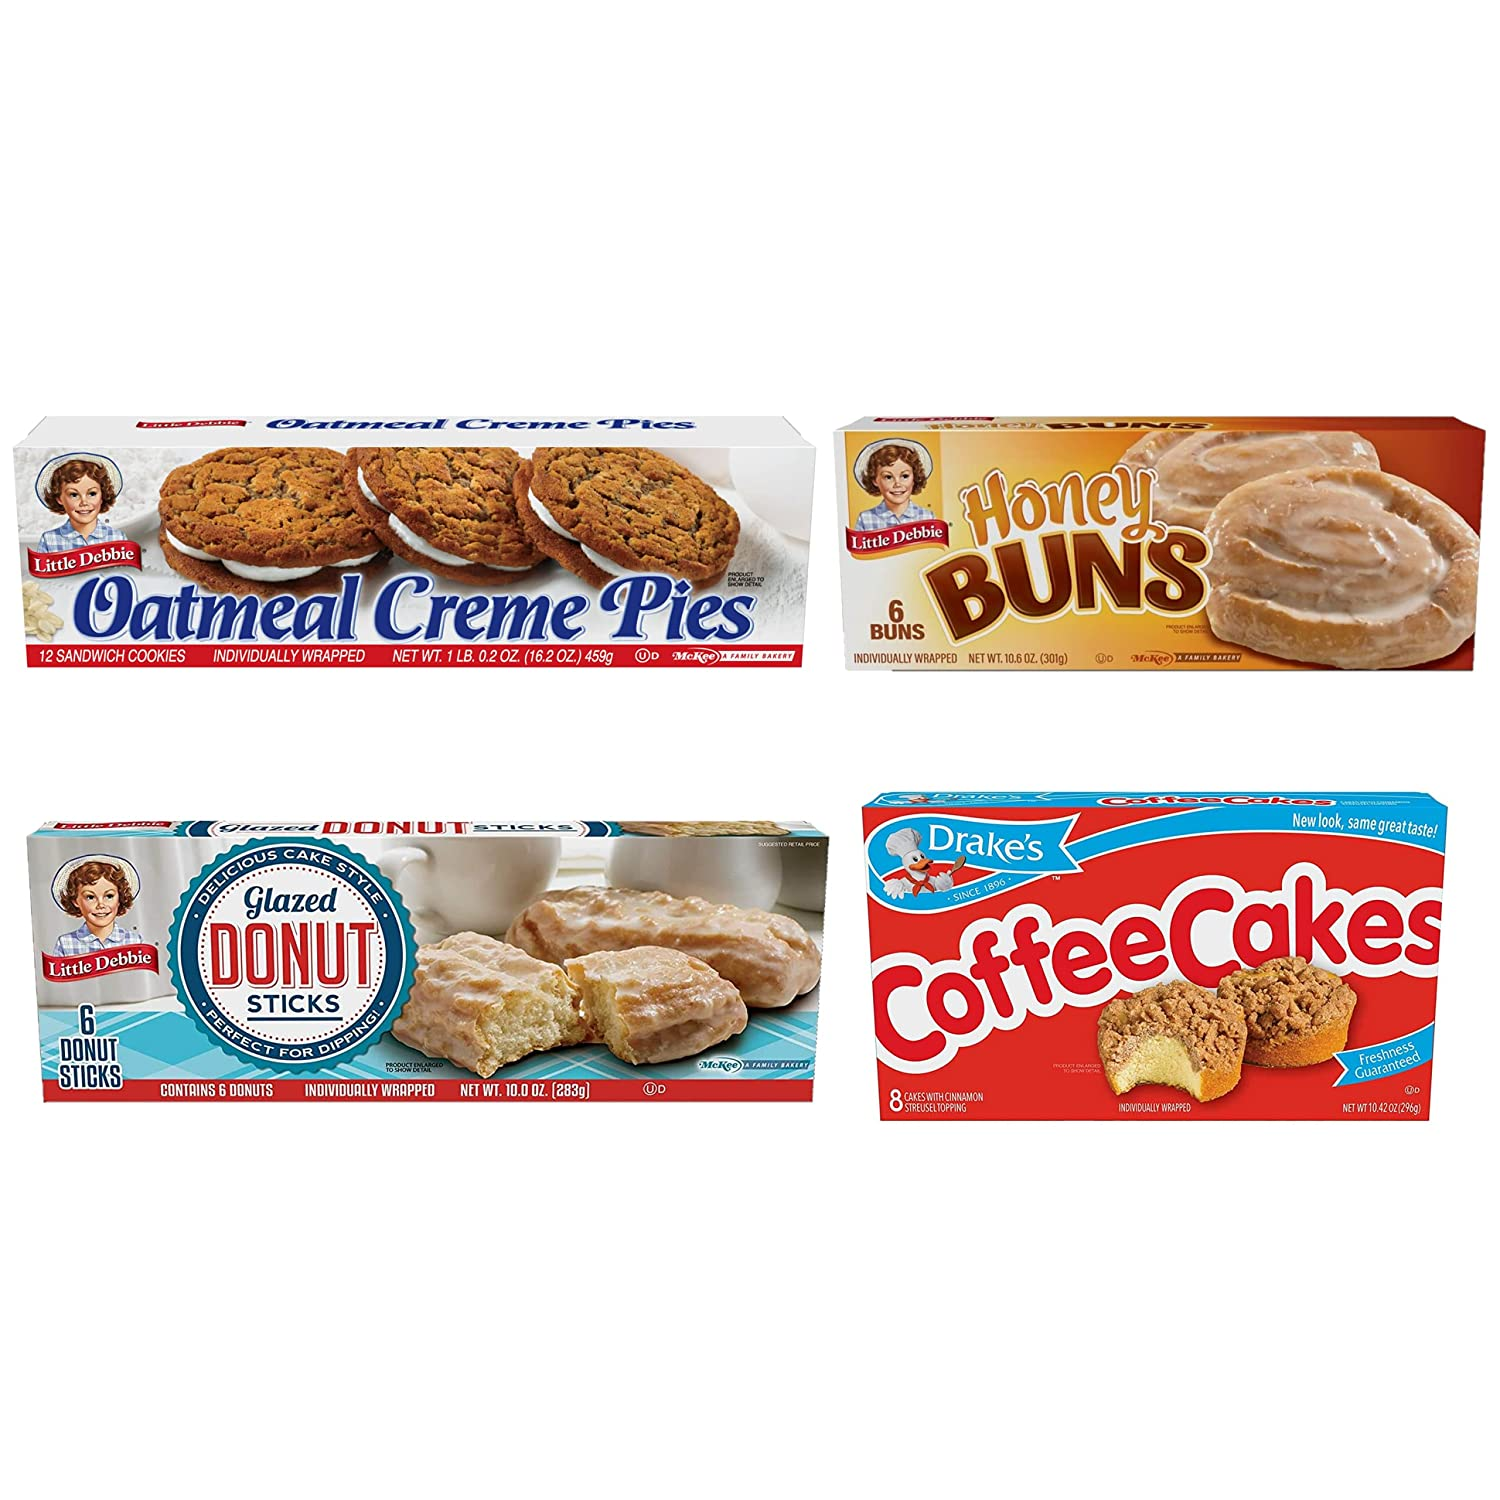 Breakfast Variety Pack: One Box each of Little Debbie Oatmeal Creme Pies, Honey Buns, Donut Sticks and Drake's Coffee Cakes! by Philly Favorites